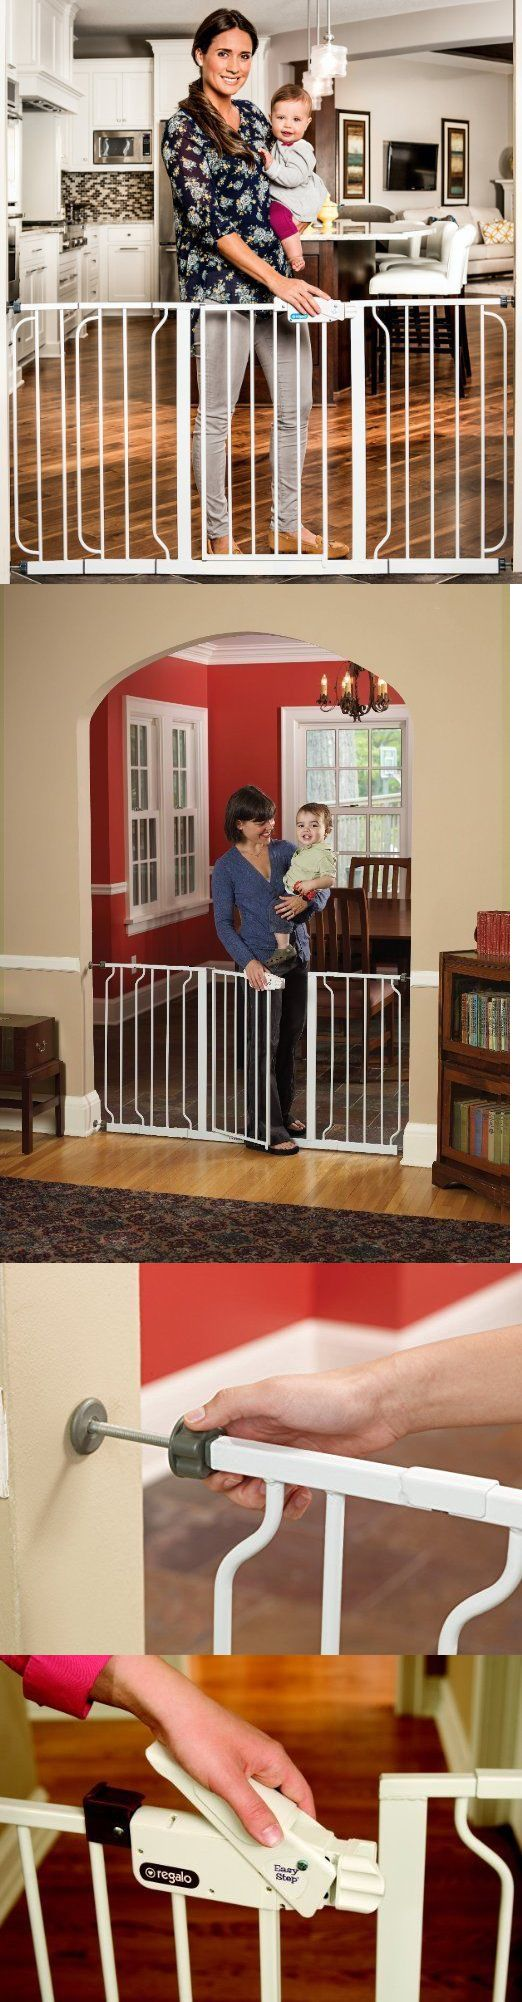 Fences and Exercise Pens 20748: Dog Gates For The House Extra Wide With Door Tall Pet Fence Adjustable Walk Thru -> BUY IT NOW ONLY: $89.95 on eBay!